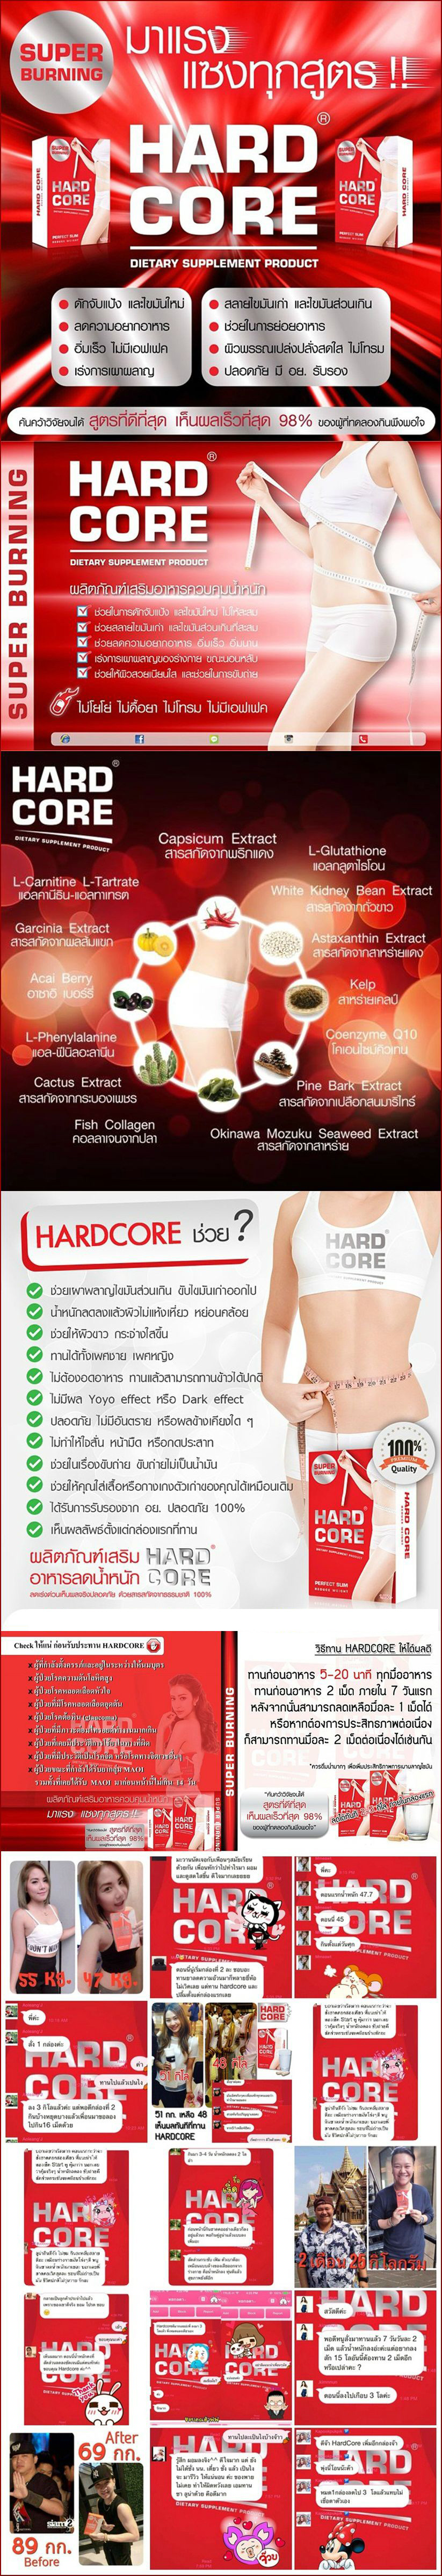 Hardcore-Super-Burning-Dietary-Supplement-Product-reviews